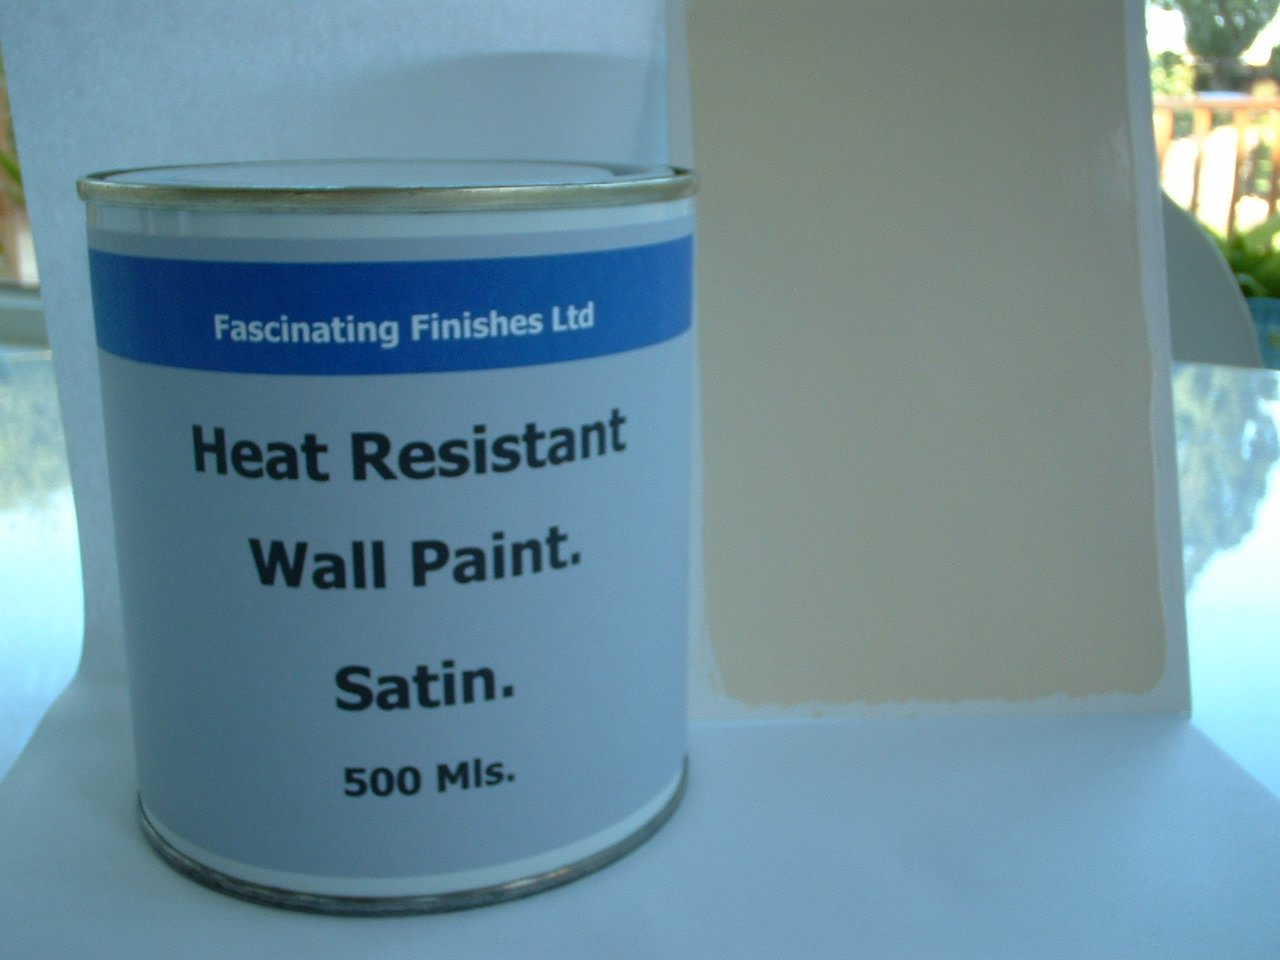 1 x 500ml satin cream heat resistant wall paint wood burner stove